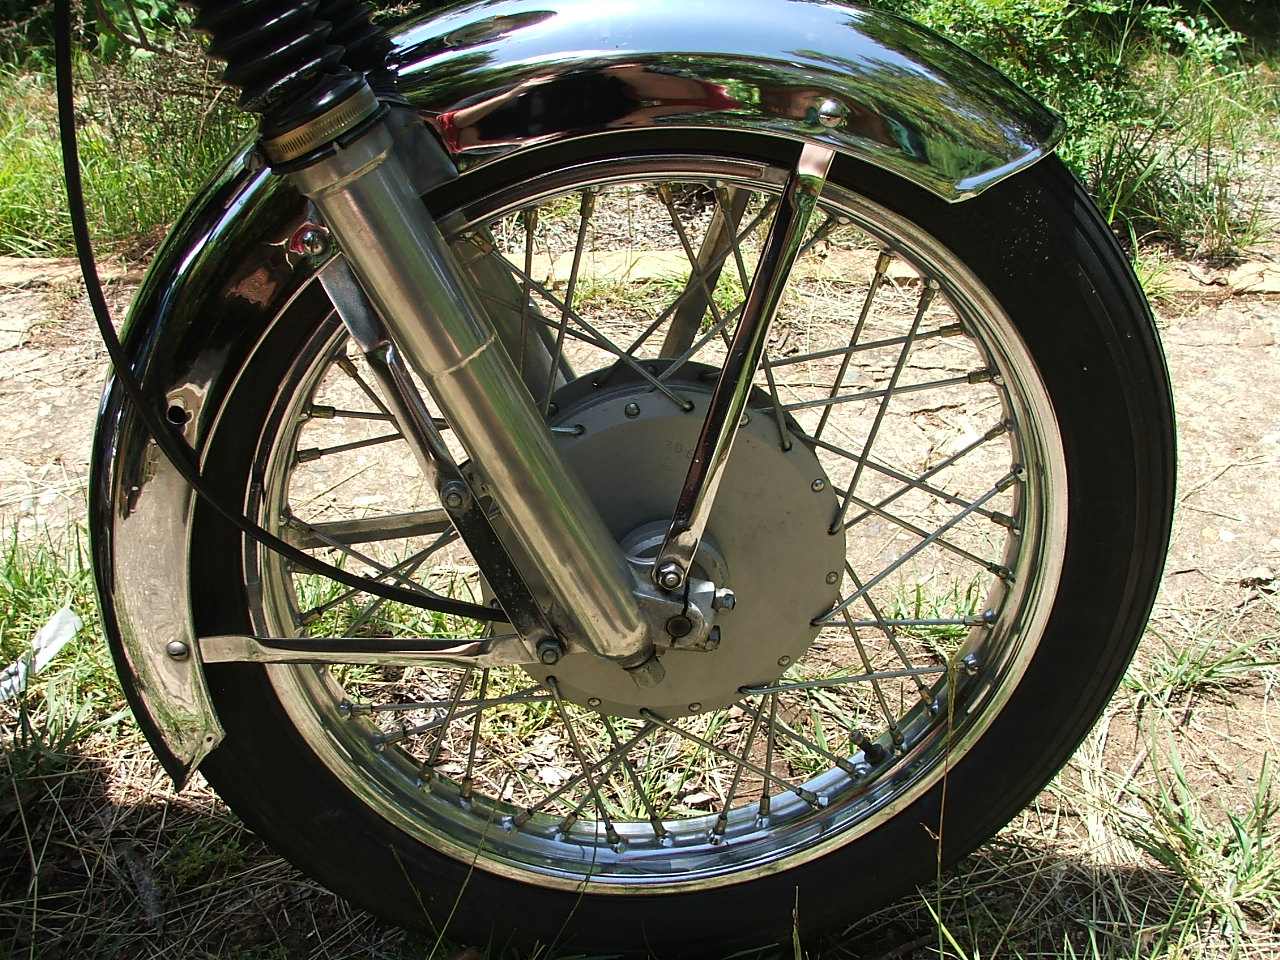 Right front wheel, 350 enfield